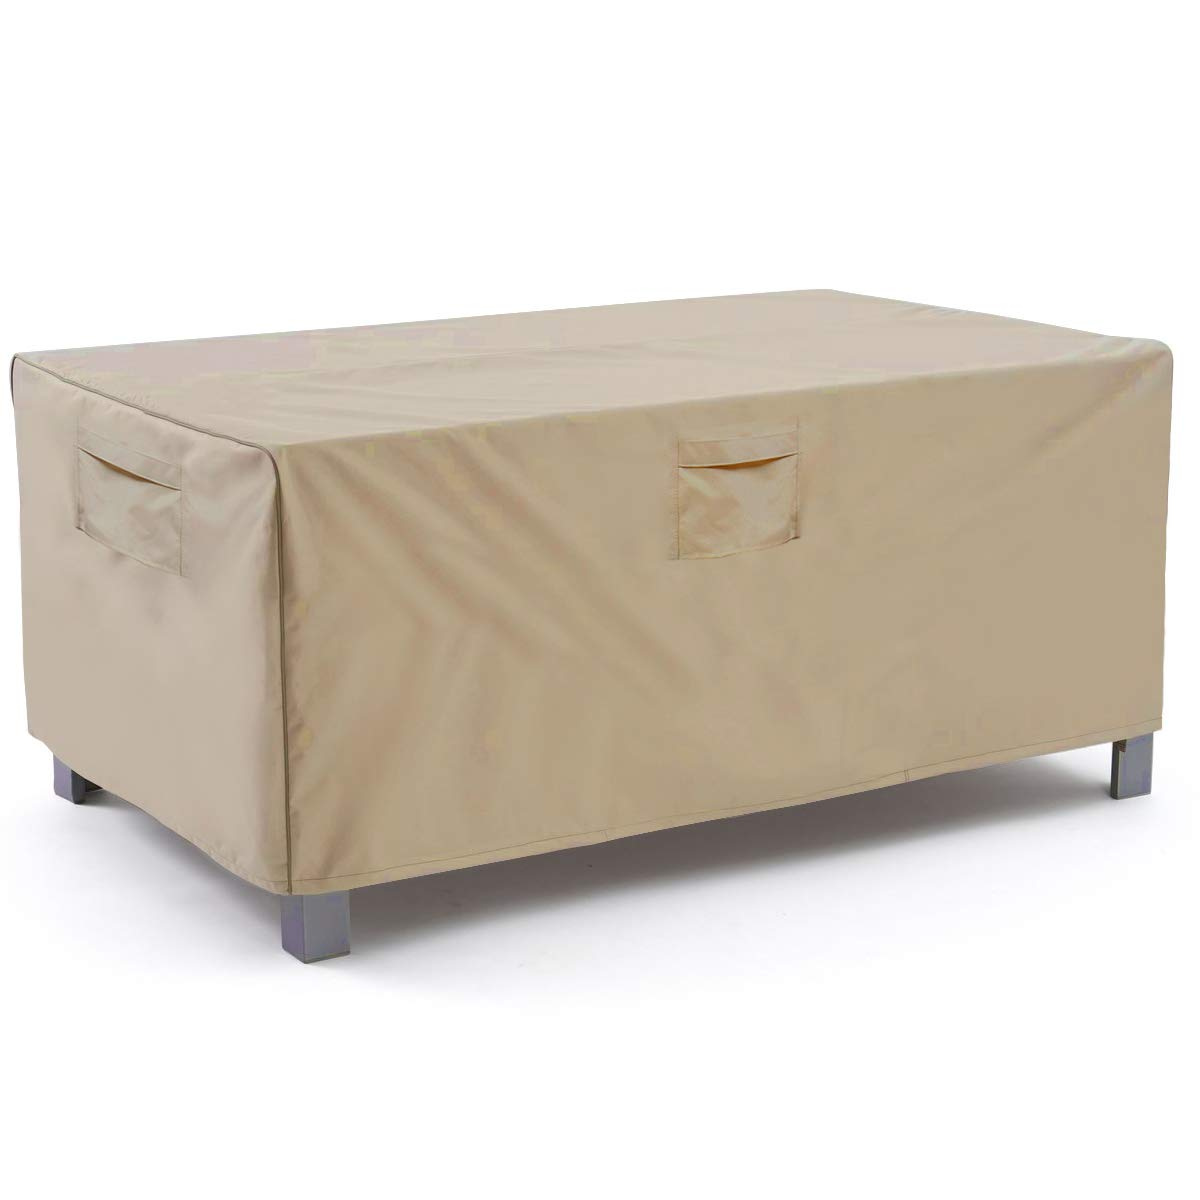 Vailge Veranda Rectangular/Oval Patio Table Cover, Heavy Duty and Waterproof Outdoor Lawn Patio Furniture Covers,Large Beige